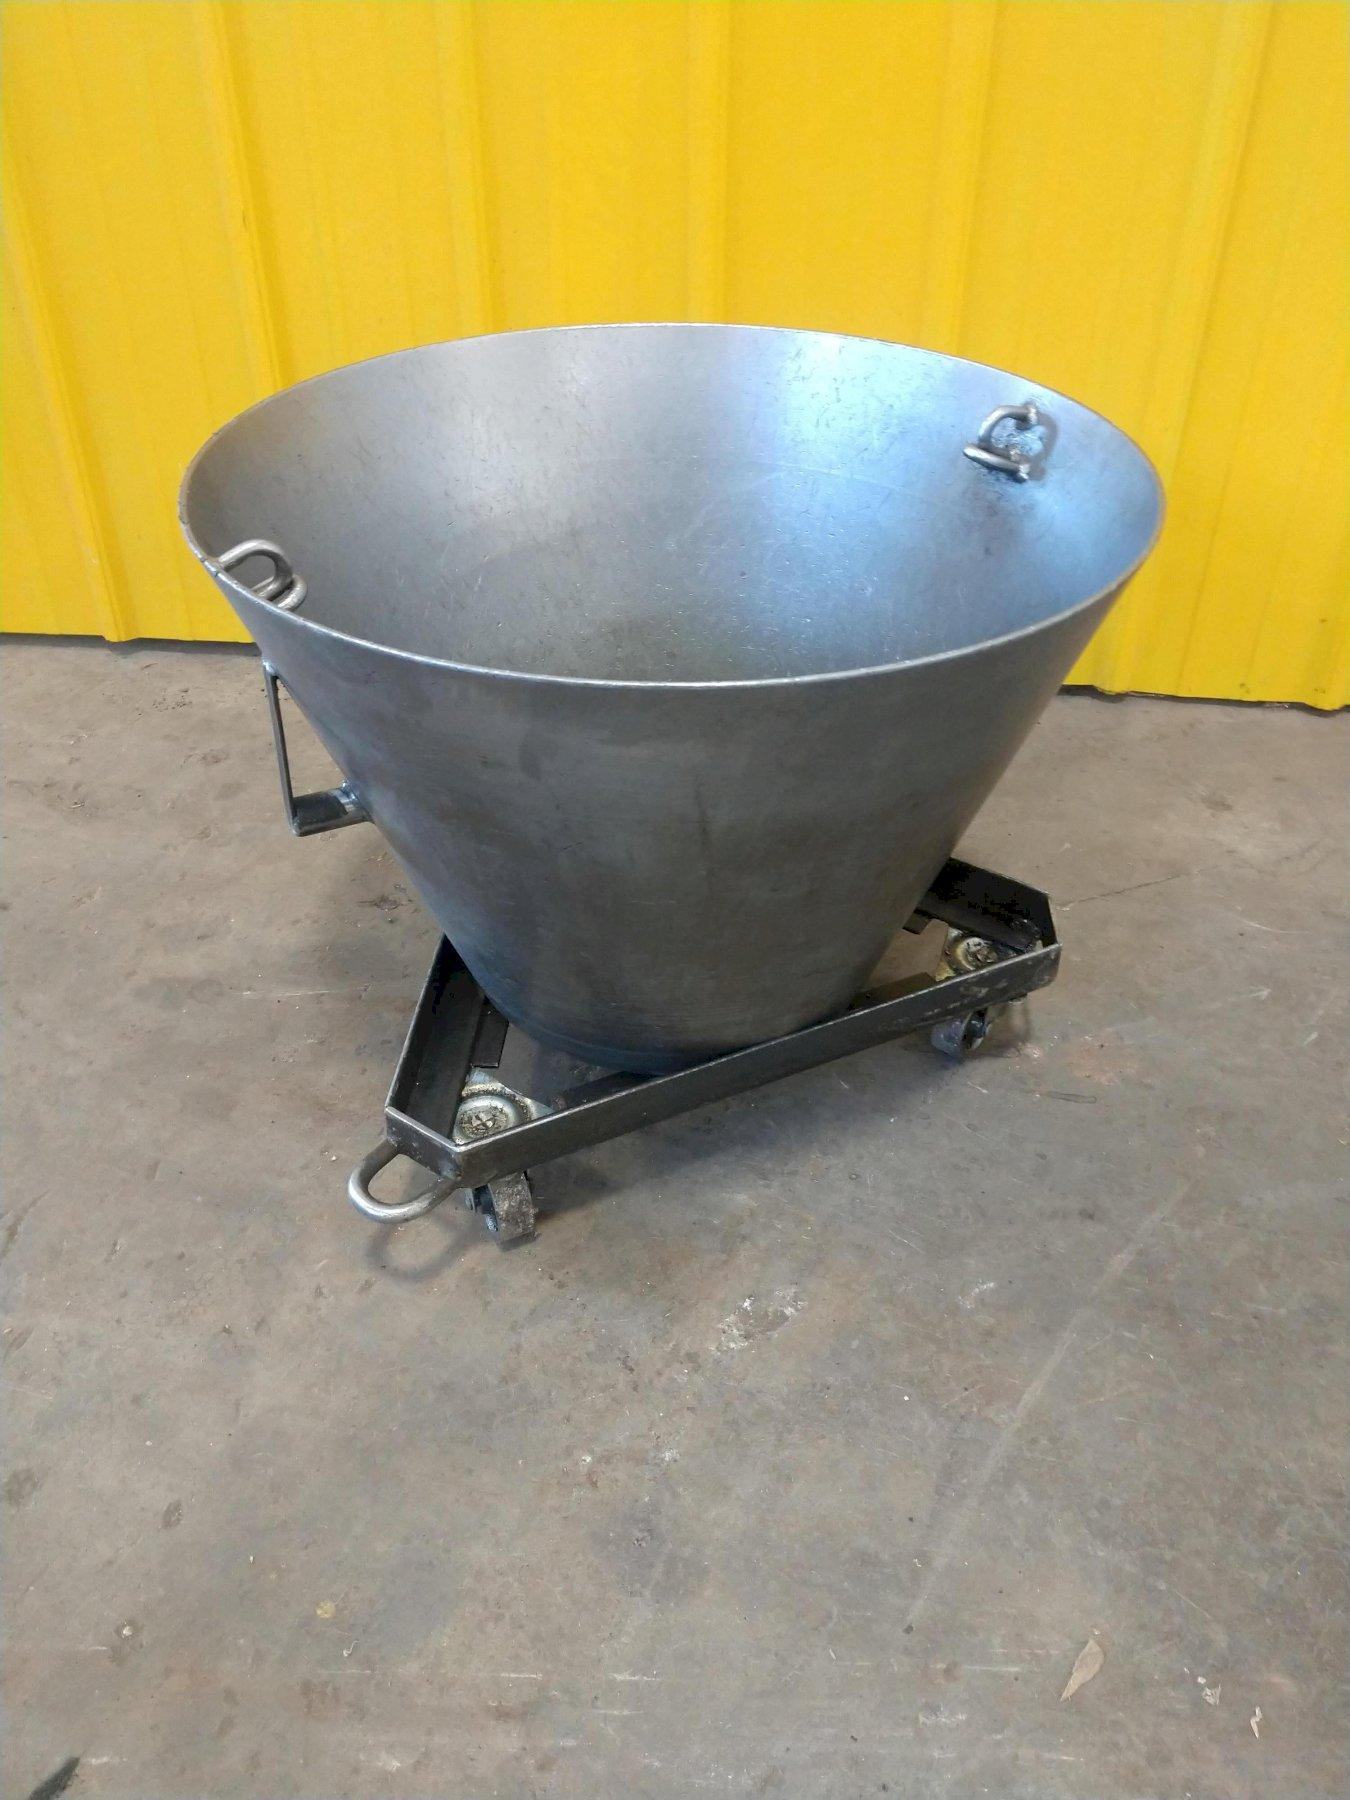 "(32) BARRETT 23"" DIAMETER X 15.5"" HIGH CENTRIFUGE BASKET POTS: STOCK #13586"